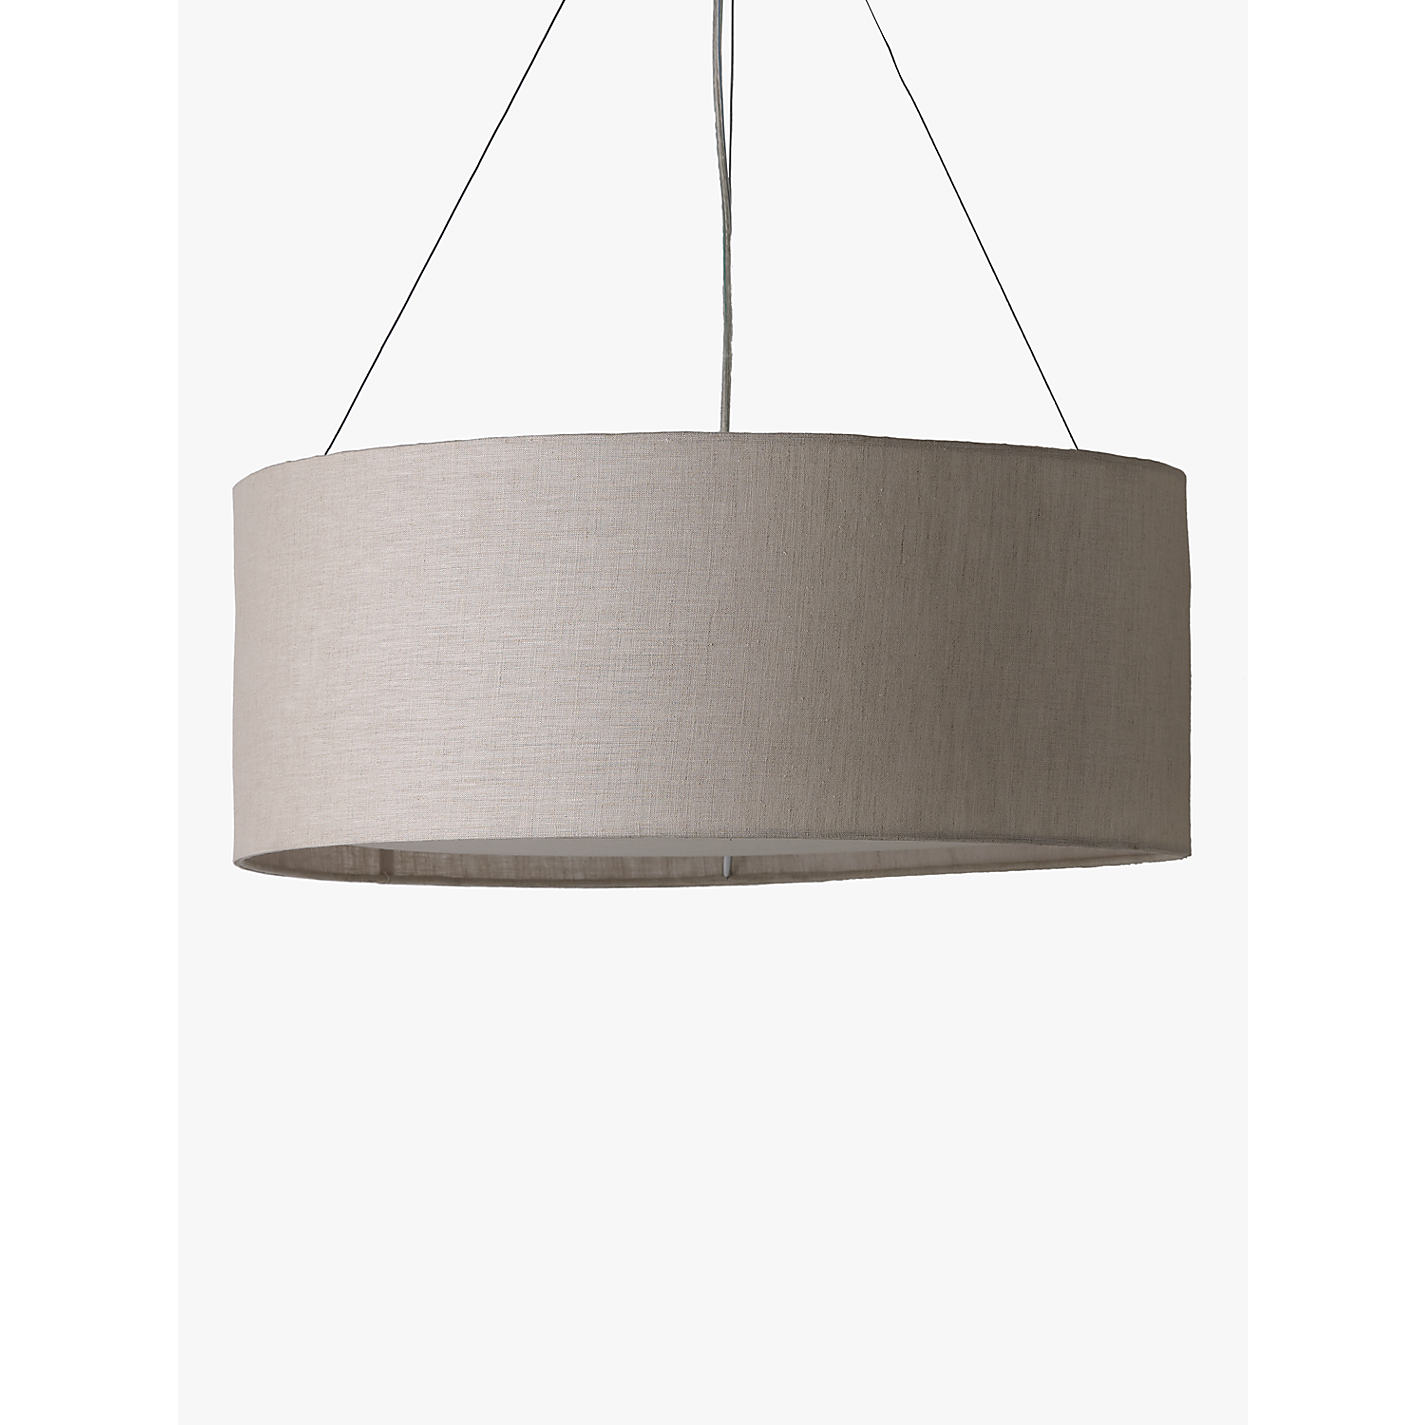 Buy john lewis samantha linen ceiling light john lewis buy john lewis samantha linen ceiling light online at johnlewis aloadofball Choice Image